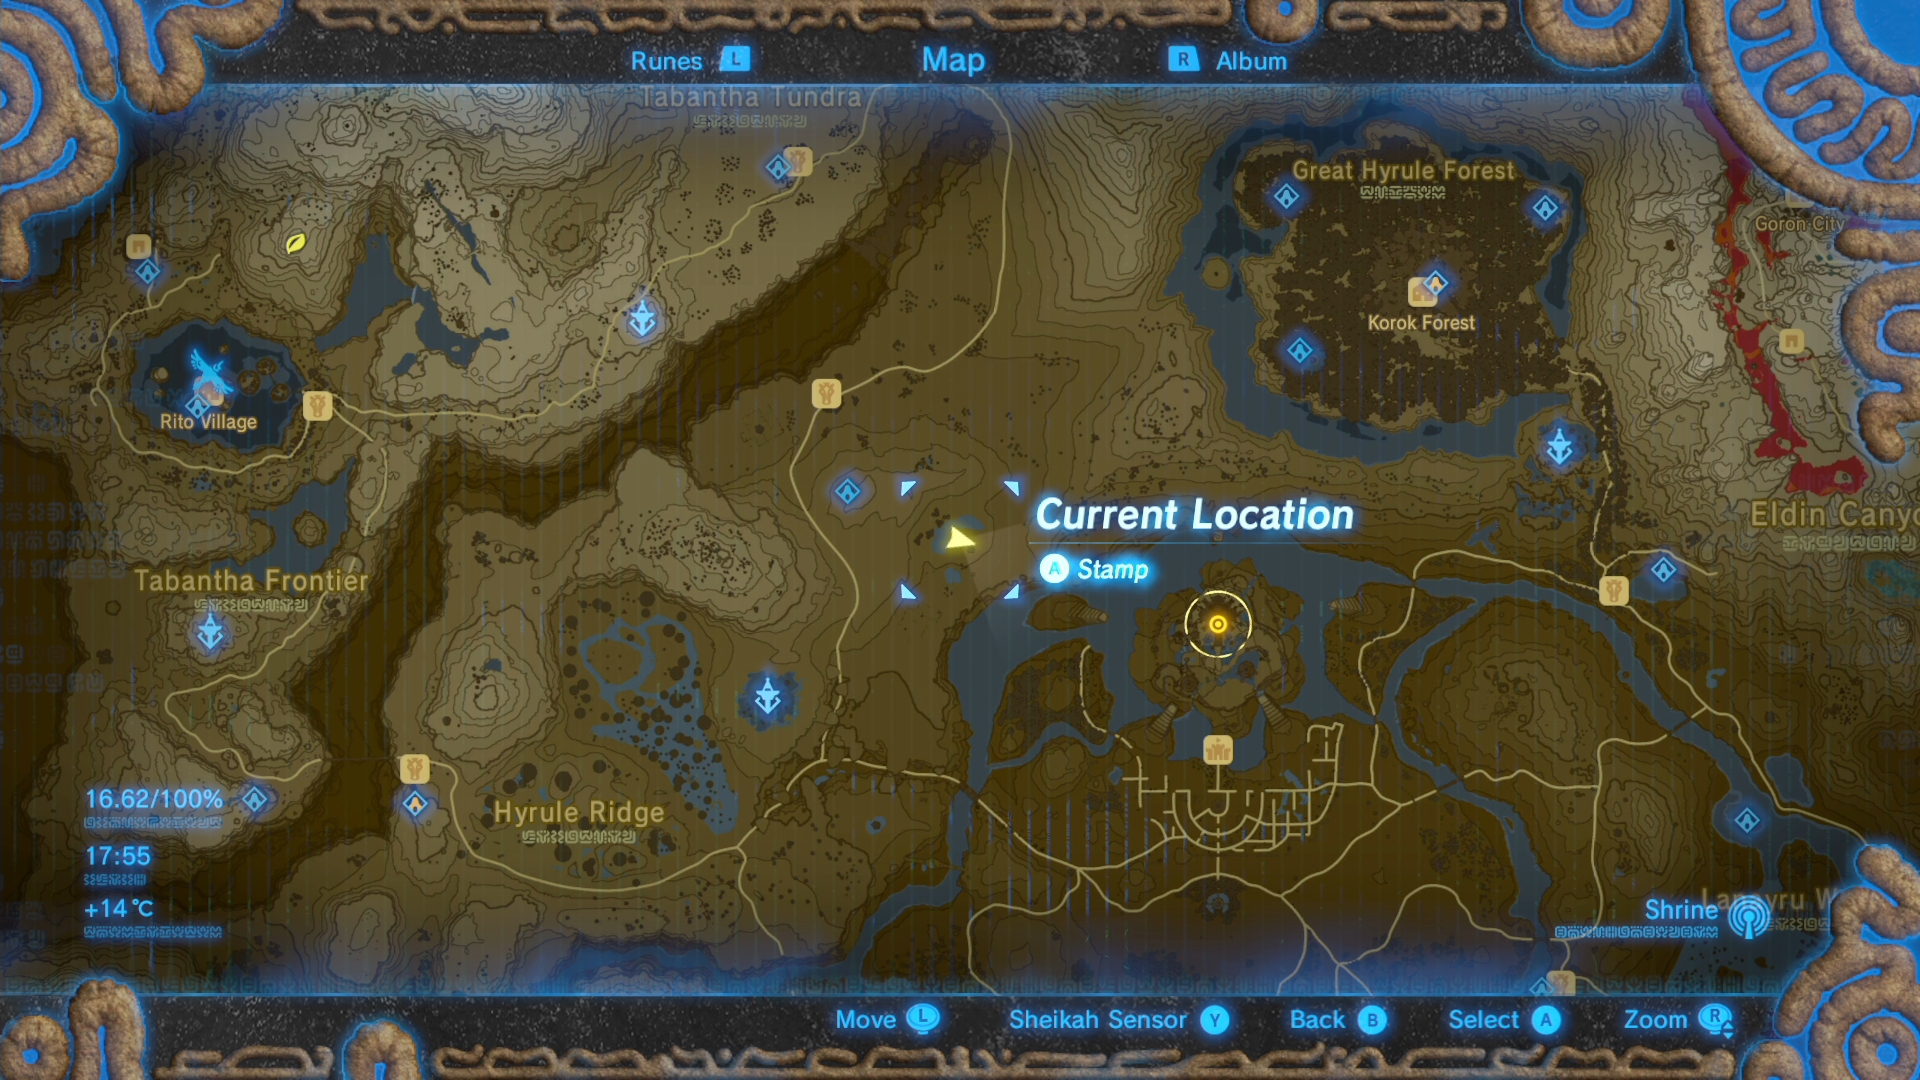 The Legend Of Zelda Breath Of The Wild Guide Locked